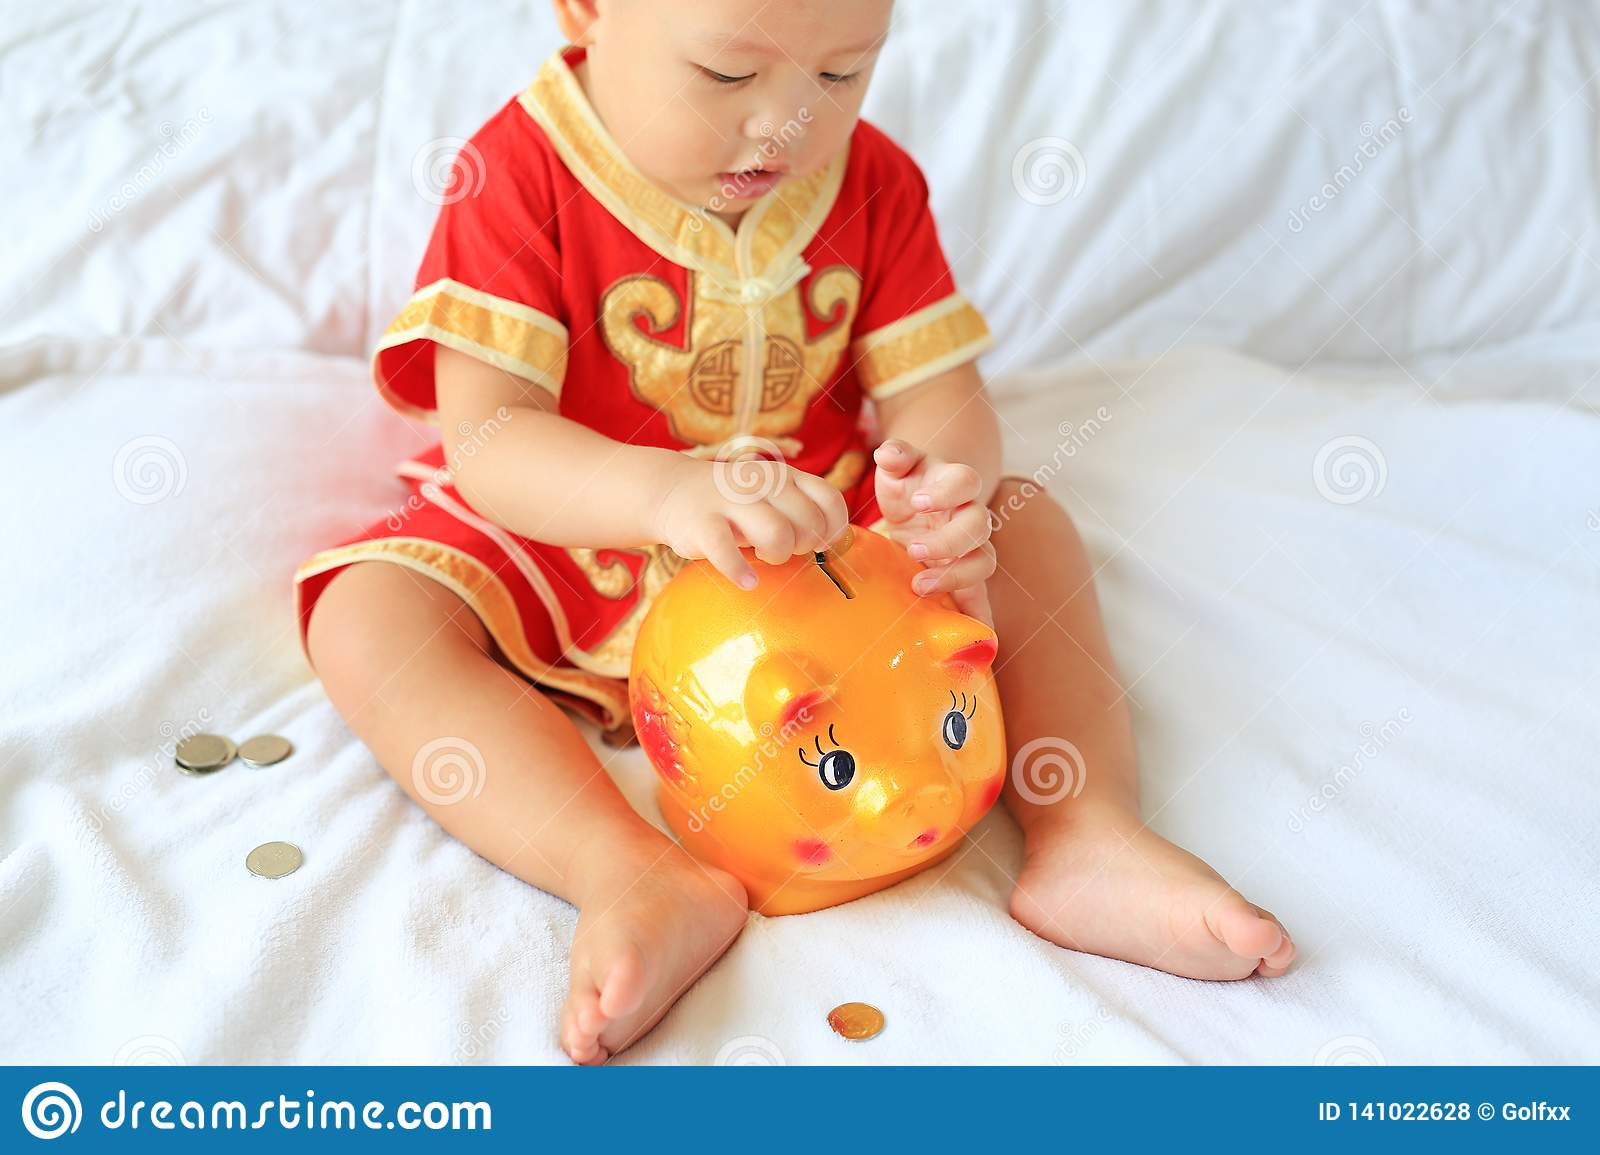 68e0abd9c064 Close up little Asian baby boy in traditional Chinese dress putting some  coins into a piggy